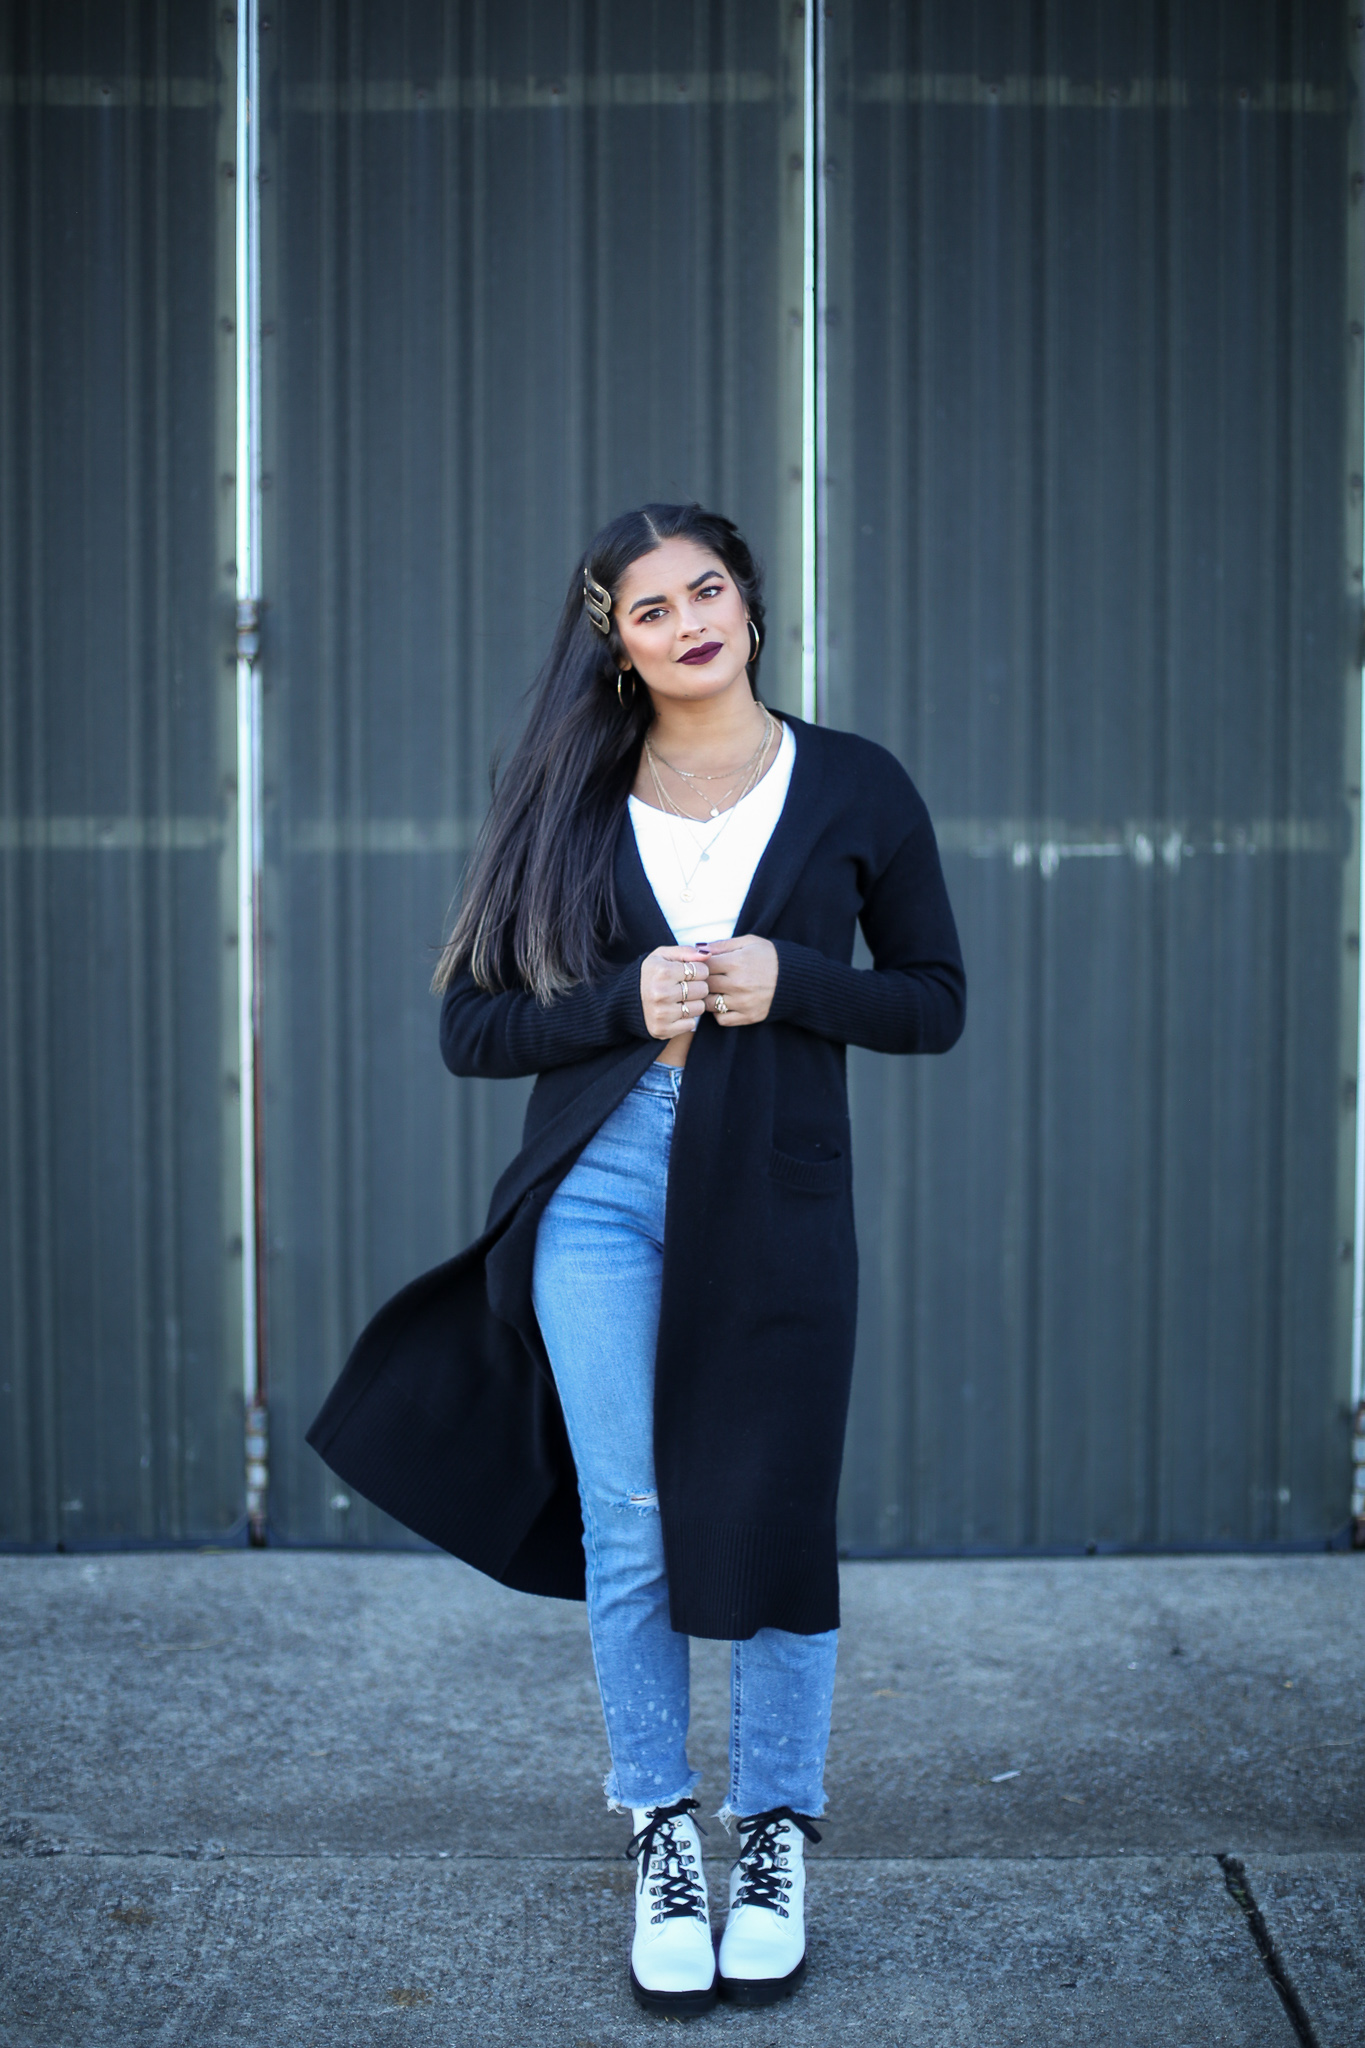 Priya the Blog, Nashville fashion blog, Nashville fashion blogger, Nashville style blog, Nashville style blogger, Nashville lifestyle blog, 2021 Goals, white combat boots, girlfriend jeans, white crop tee, long black cardigan, how to style white combat boots,